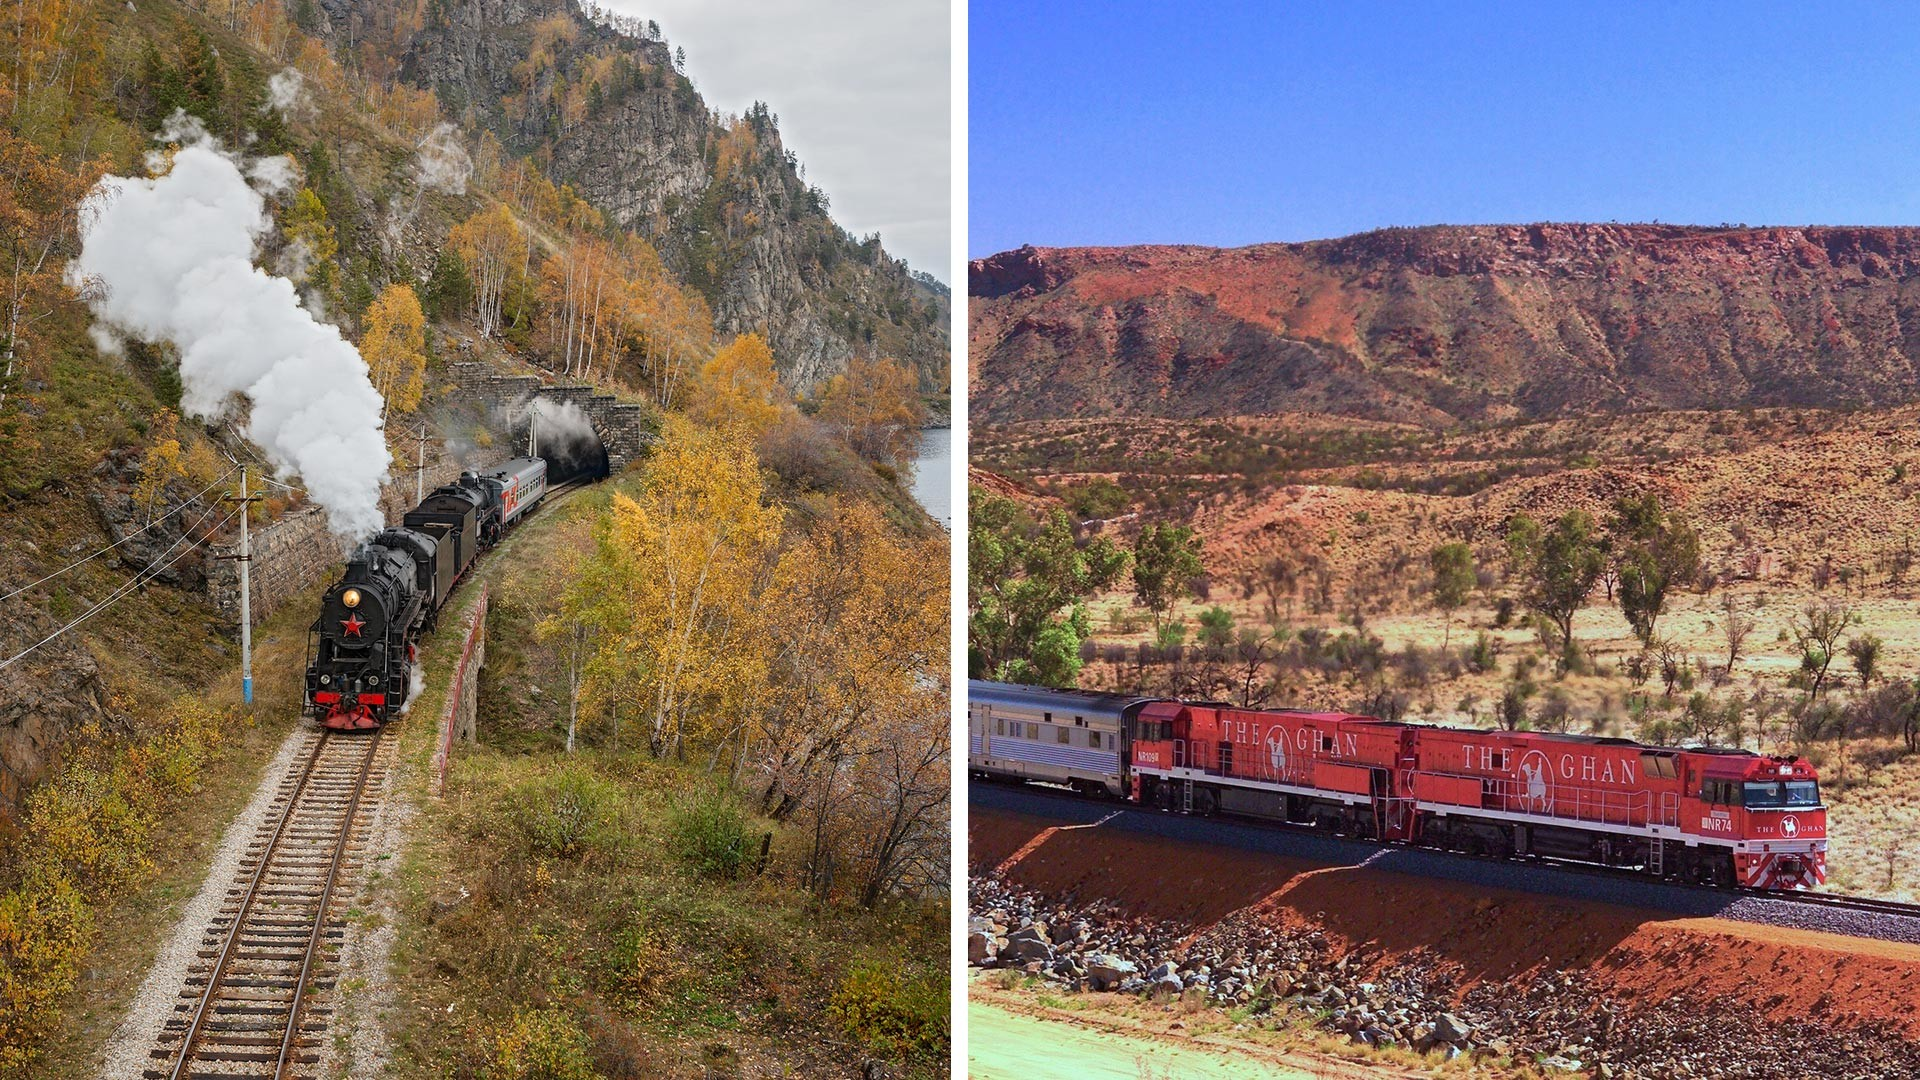 Left: The Circum-Baikal Railway. Right: The Ghan passenger train.